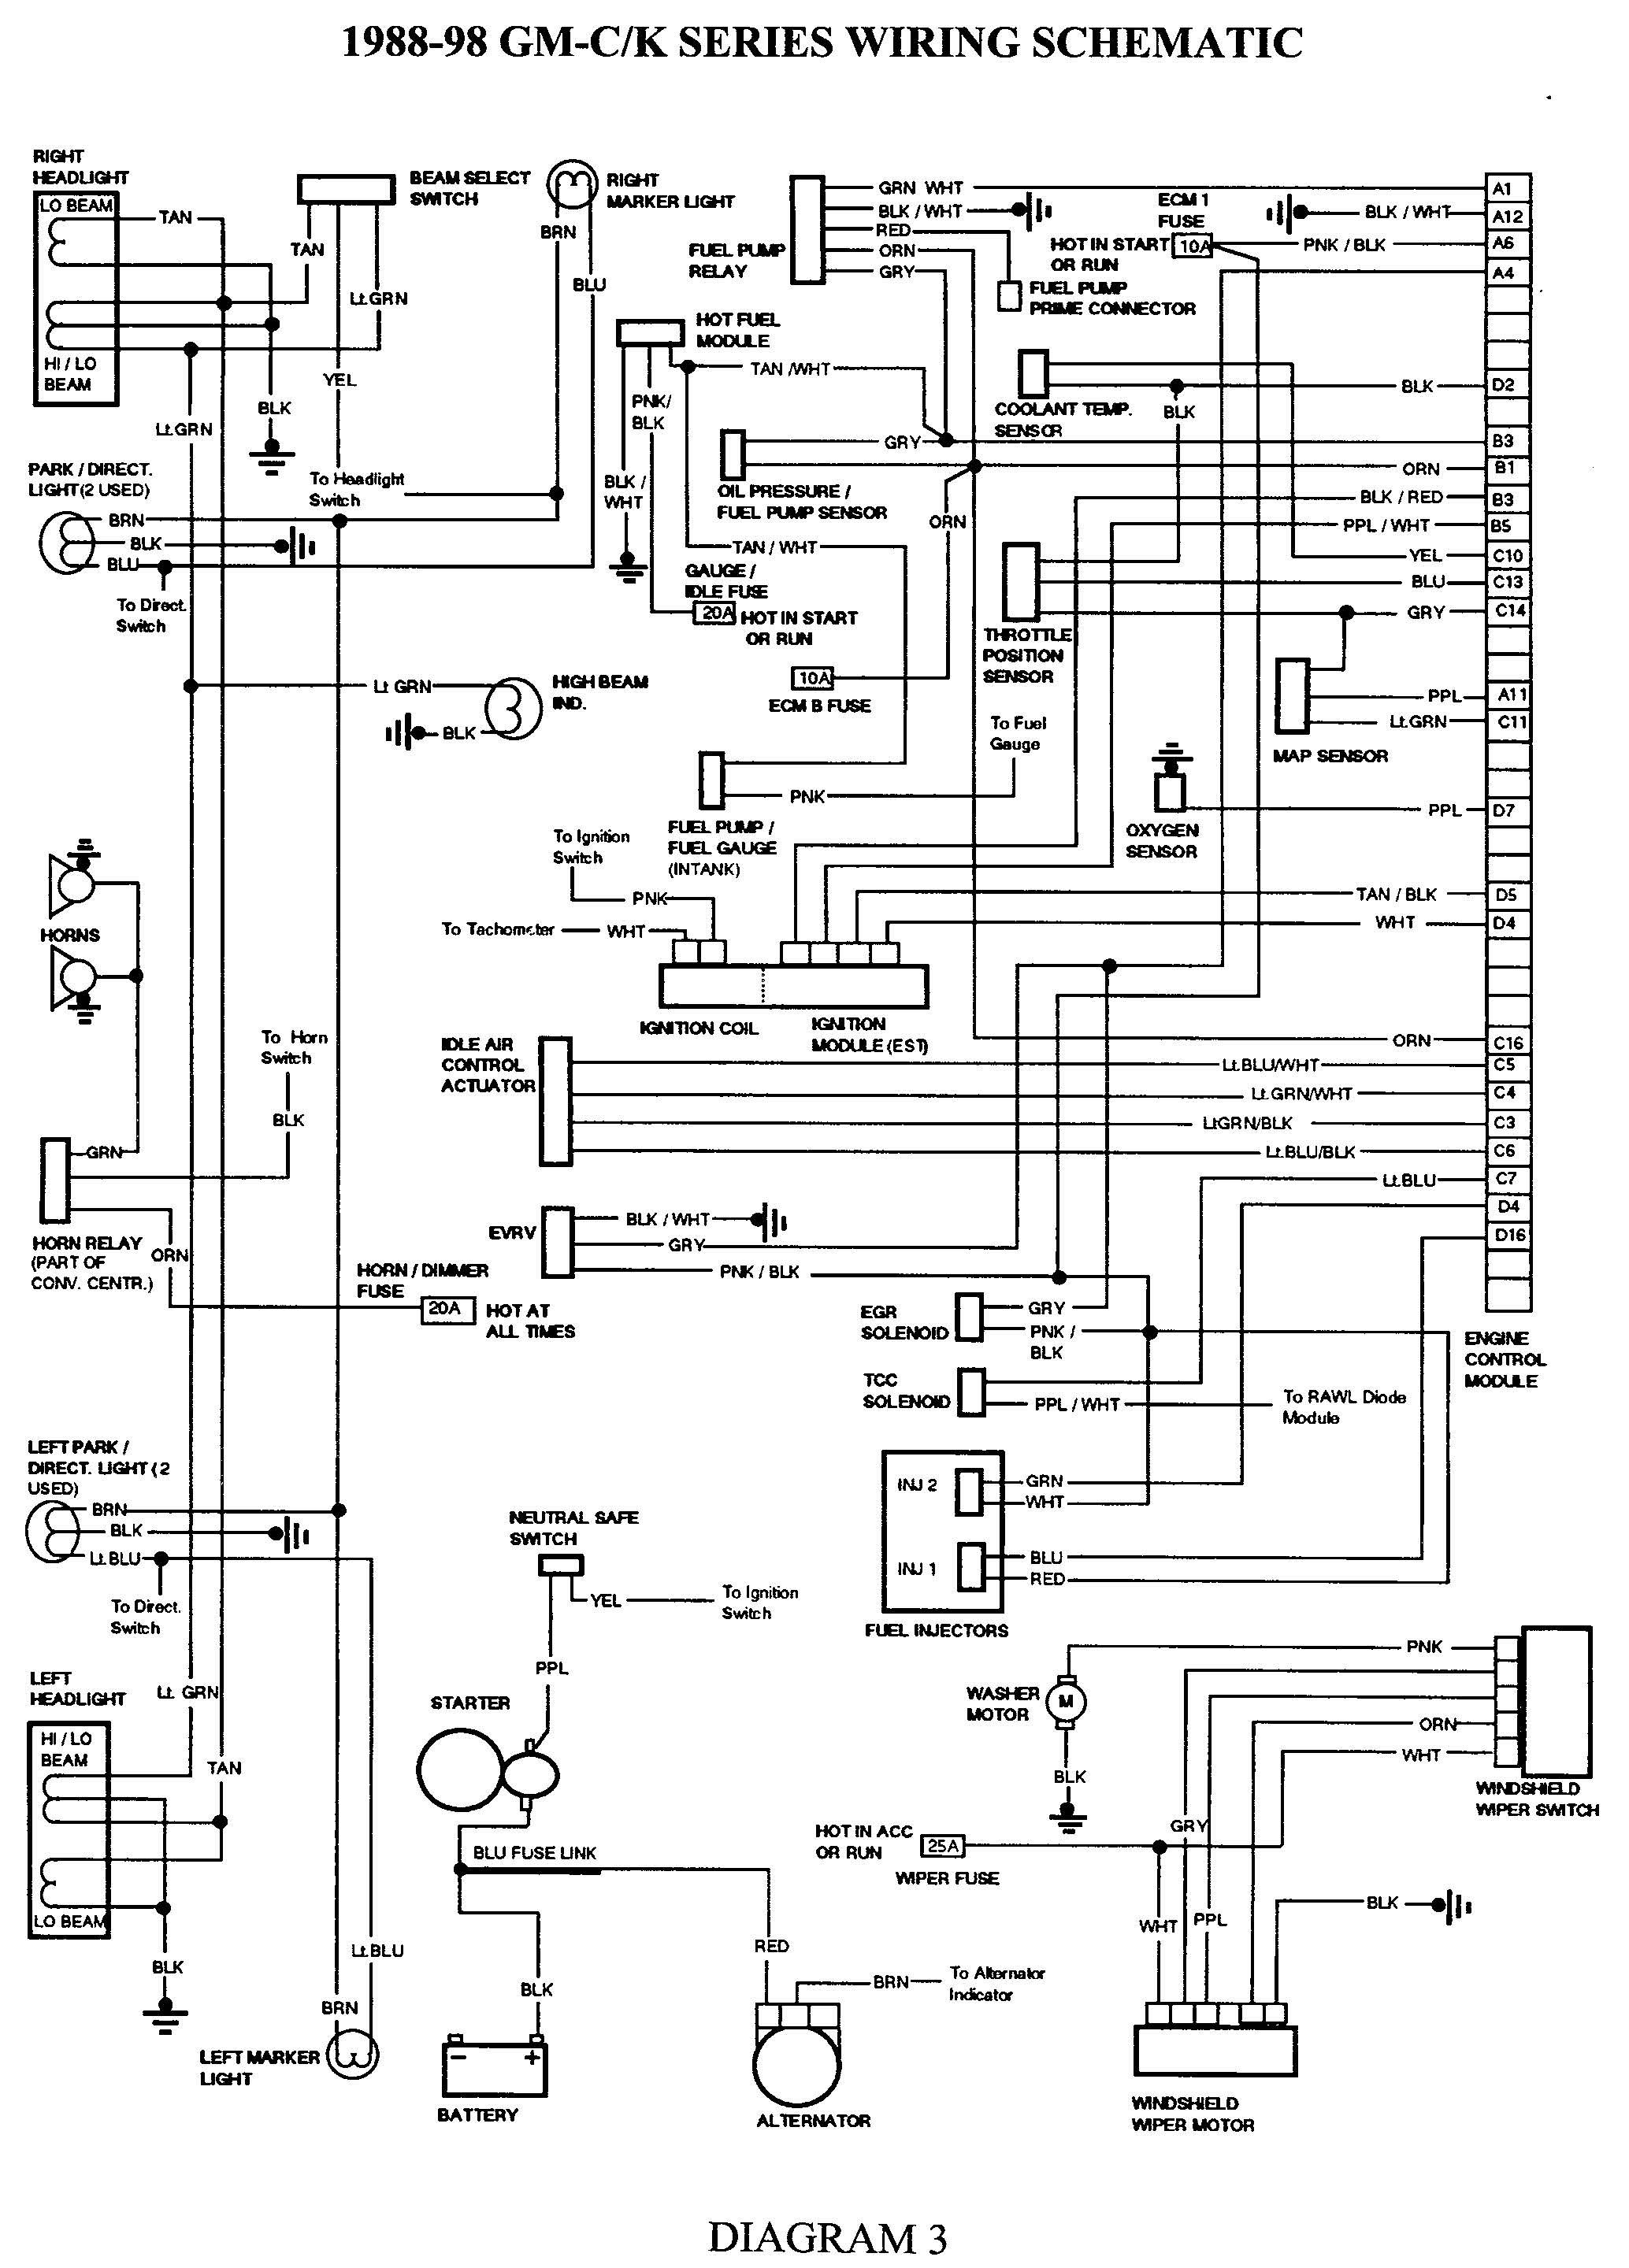 chevy v8 engine wiring wiring diagram 1986 camaro engine wiring diagram [ 2068 x 2880 Pixel ]